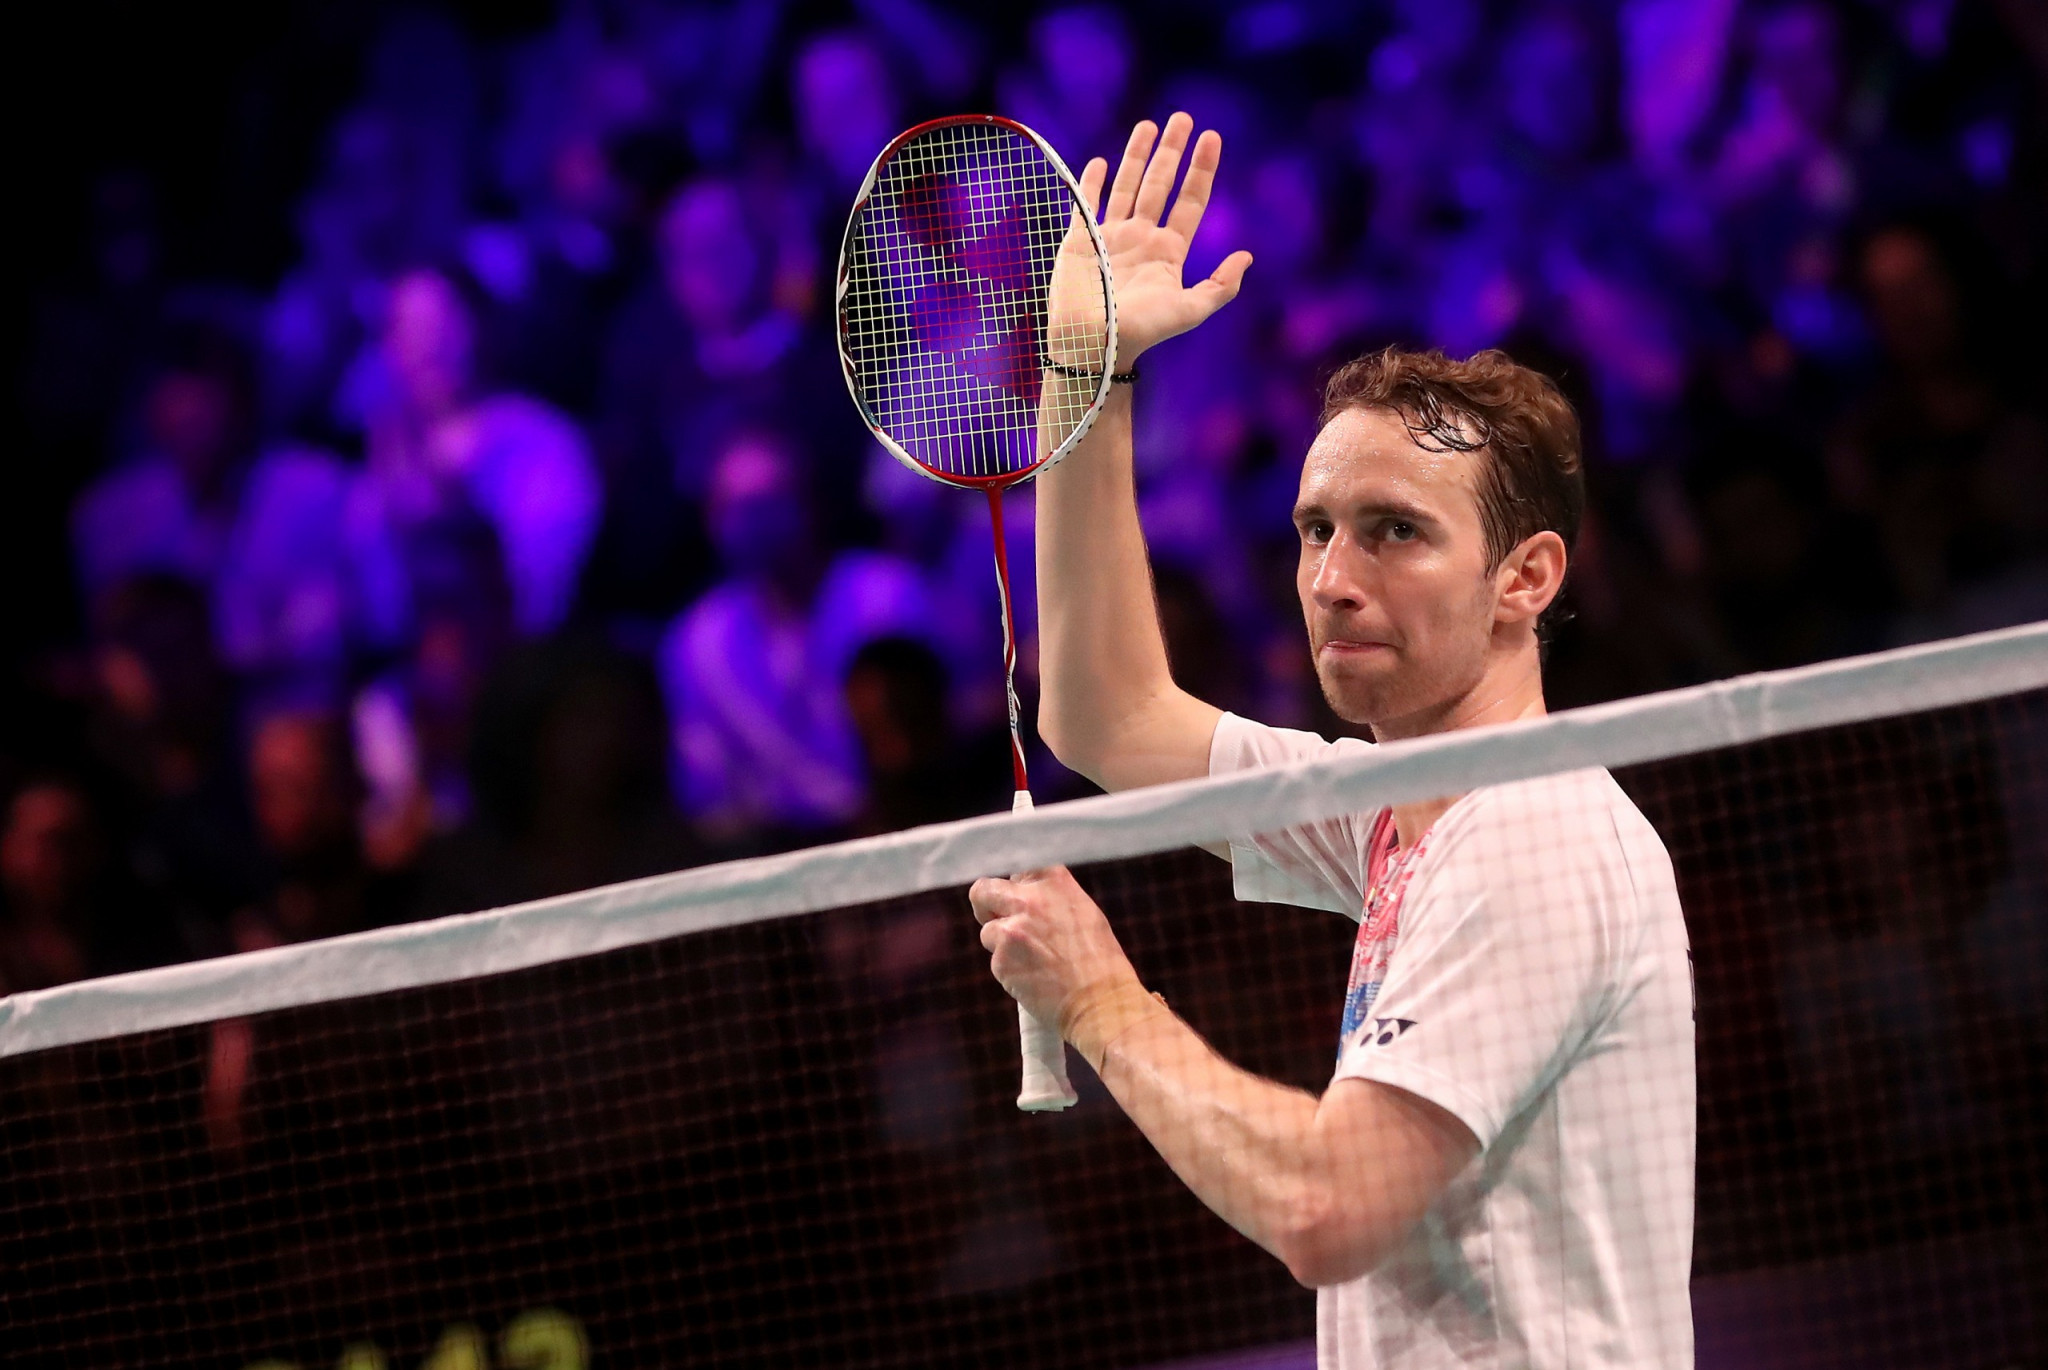 Olympic doubles silver medallist Boe announces retirement from badminton